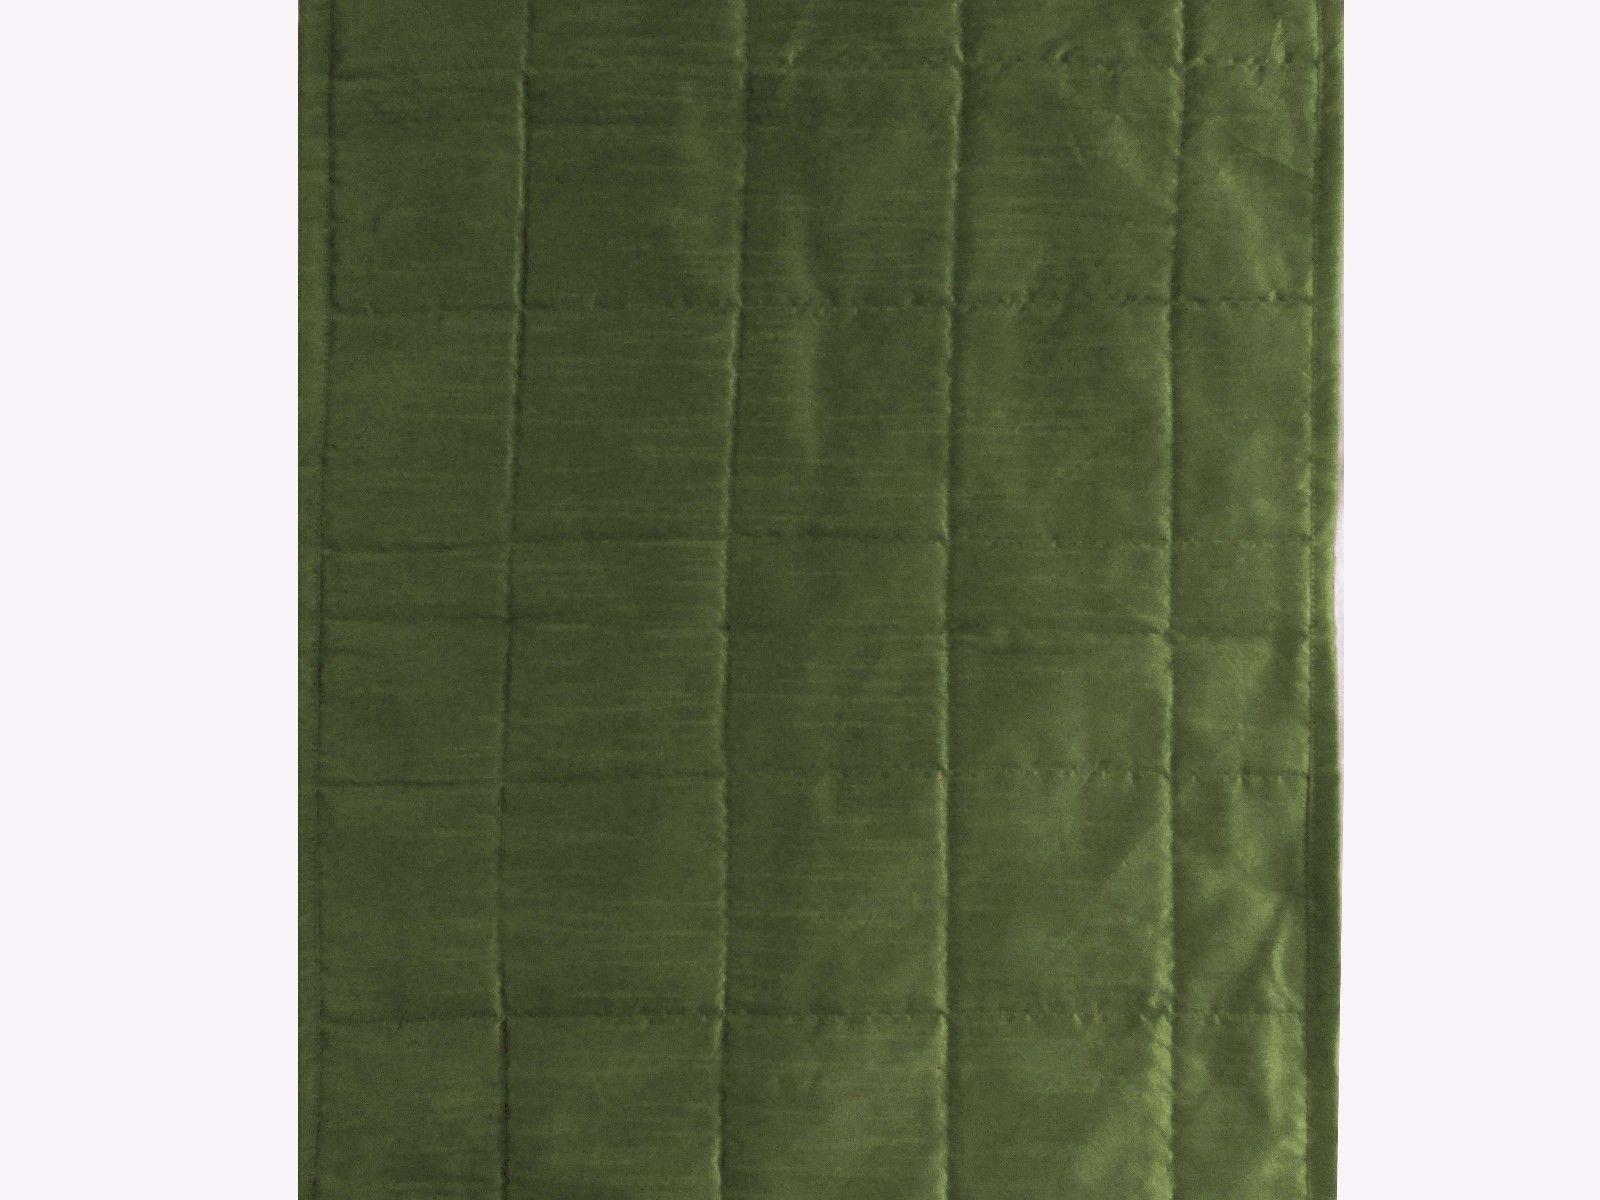 Quilted Bed Runner - Olive Green Bed Scarf Long Side Runner Throw King/Queen/Twin Size with Decorative Cushion Cover Polyester 20'' Wide X 102'' Long (50 cm x 300 cm)